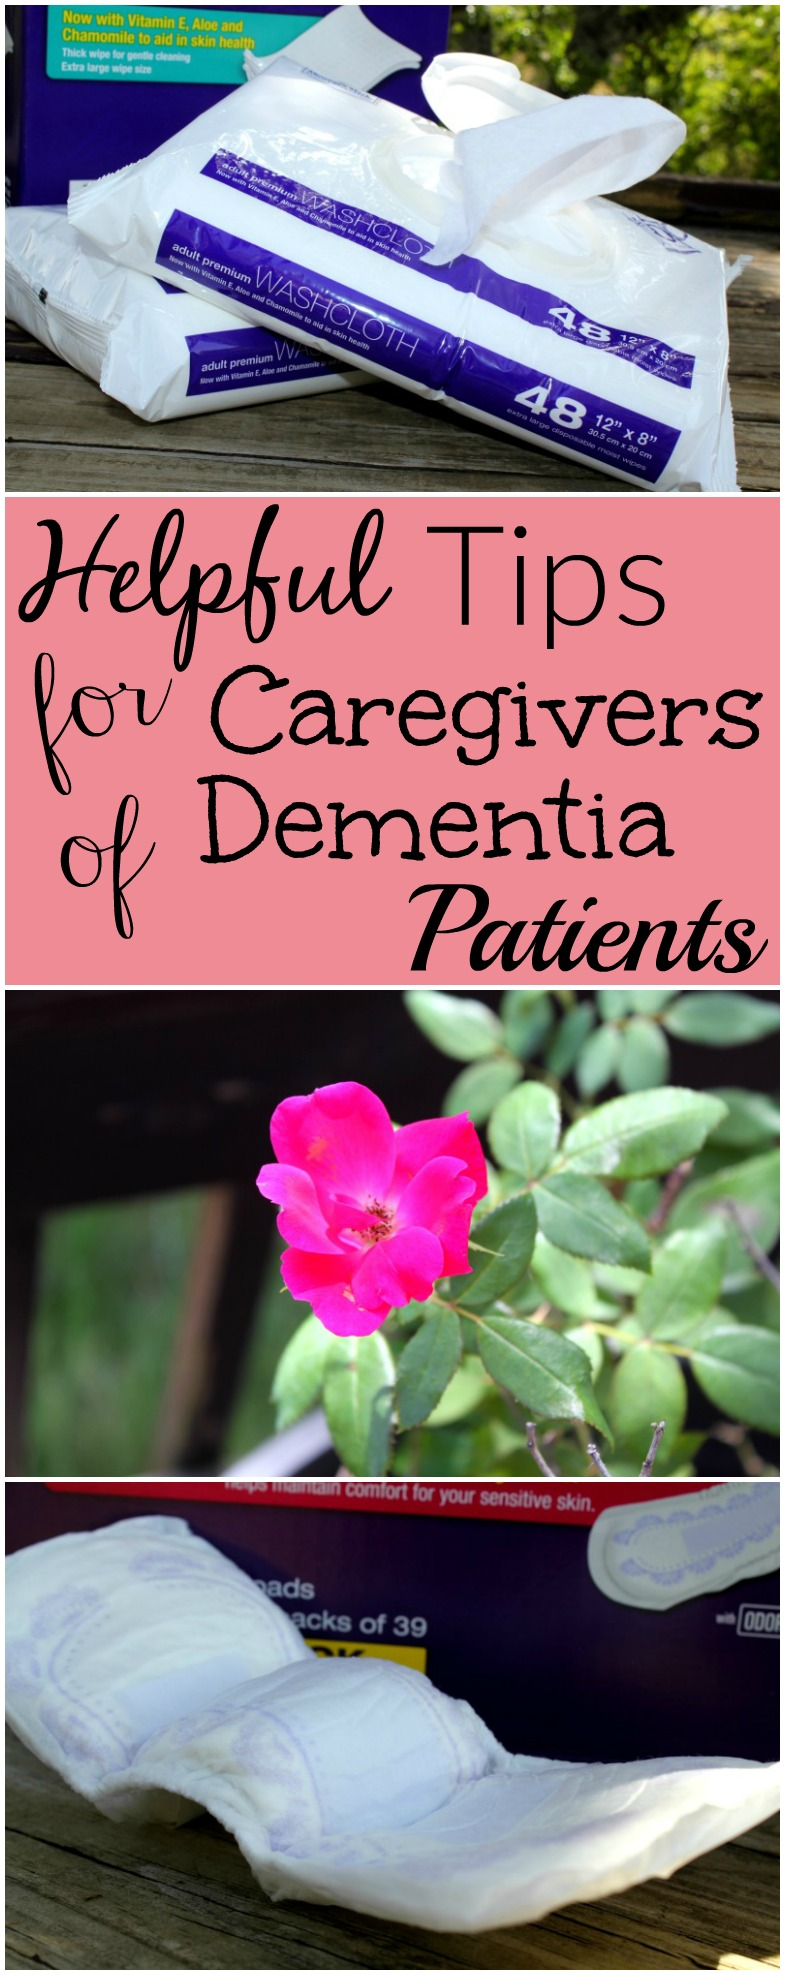 Helpful Tips for Caregivers of Dementia Patients